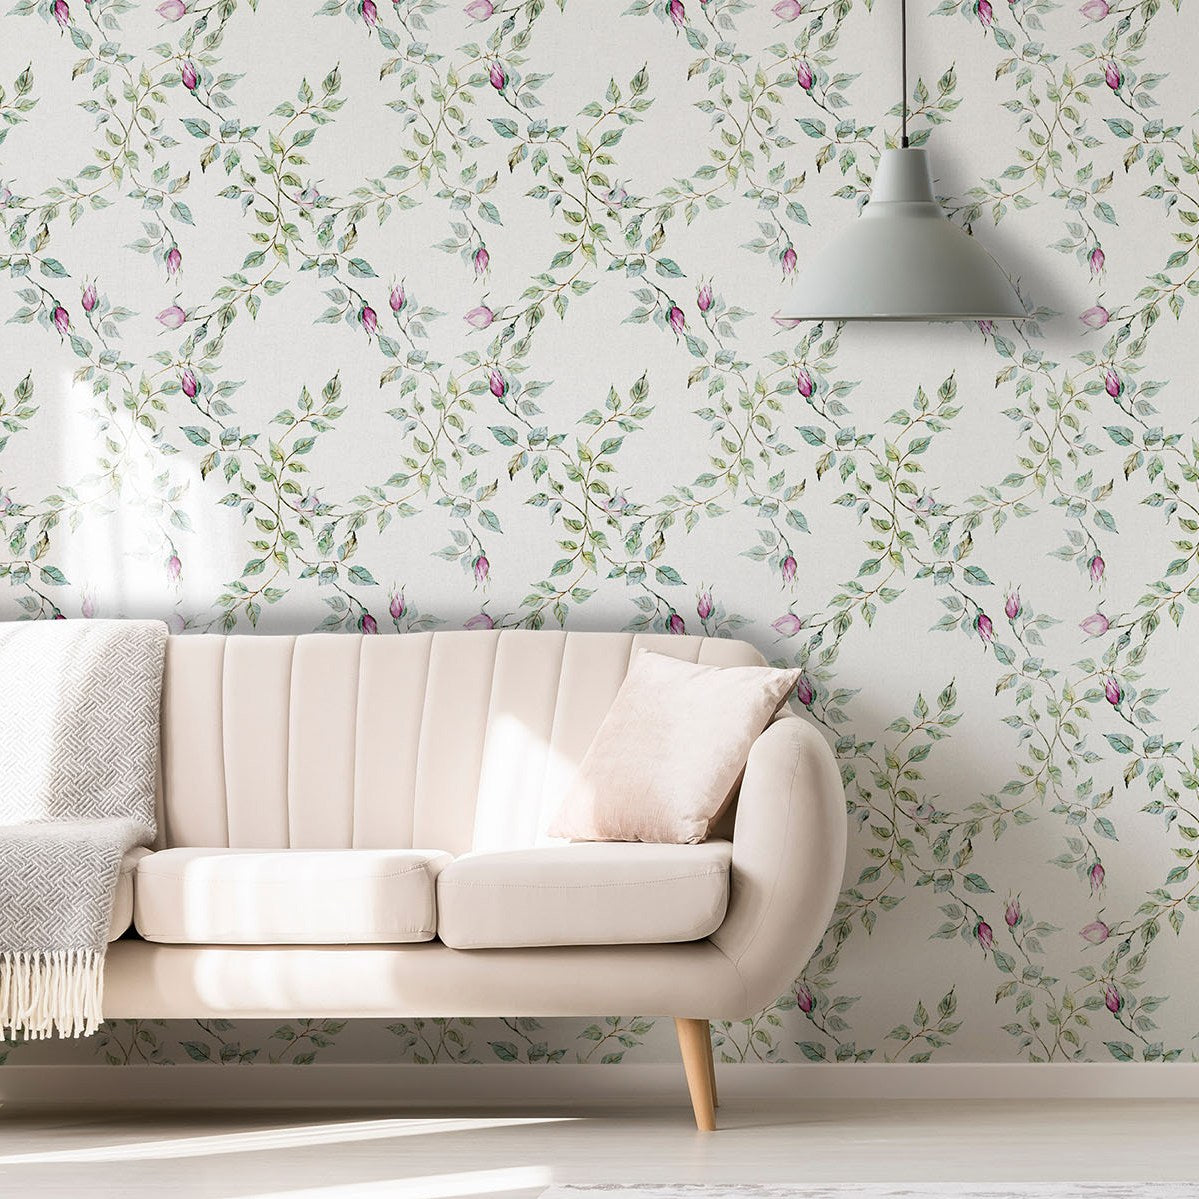 Positano Rose Blooms Wallpaper (SqM)